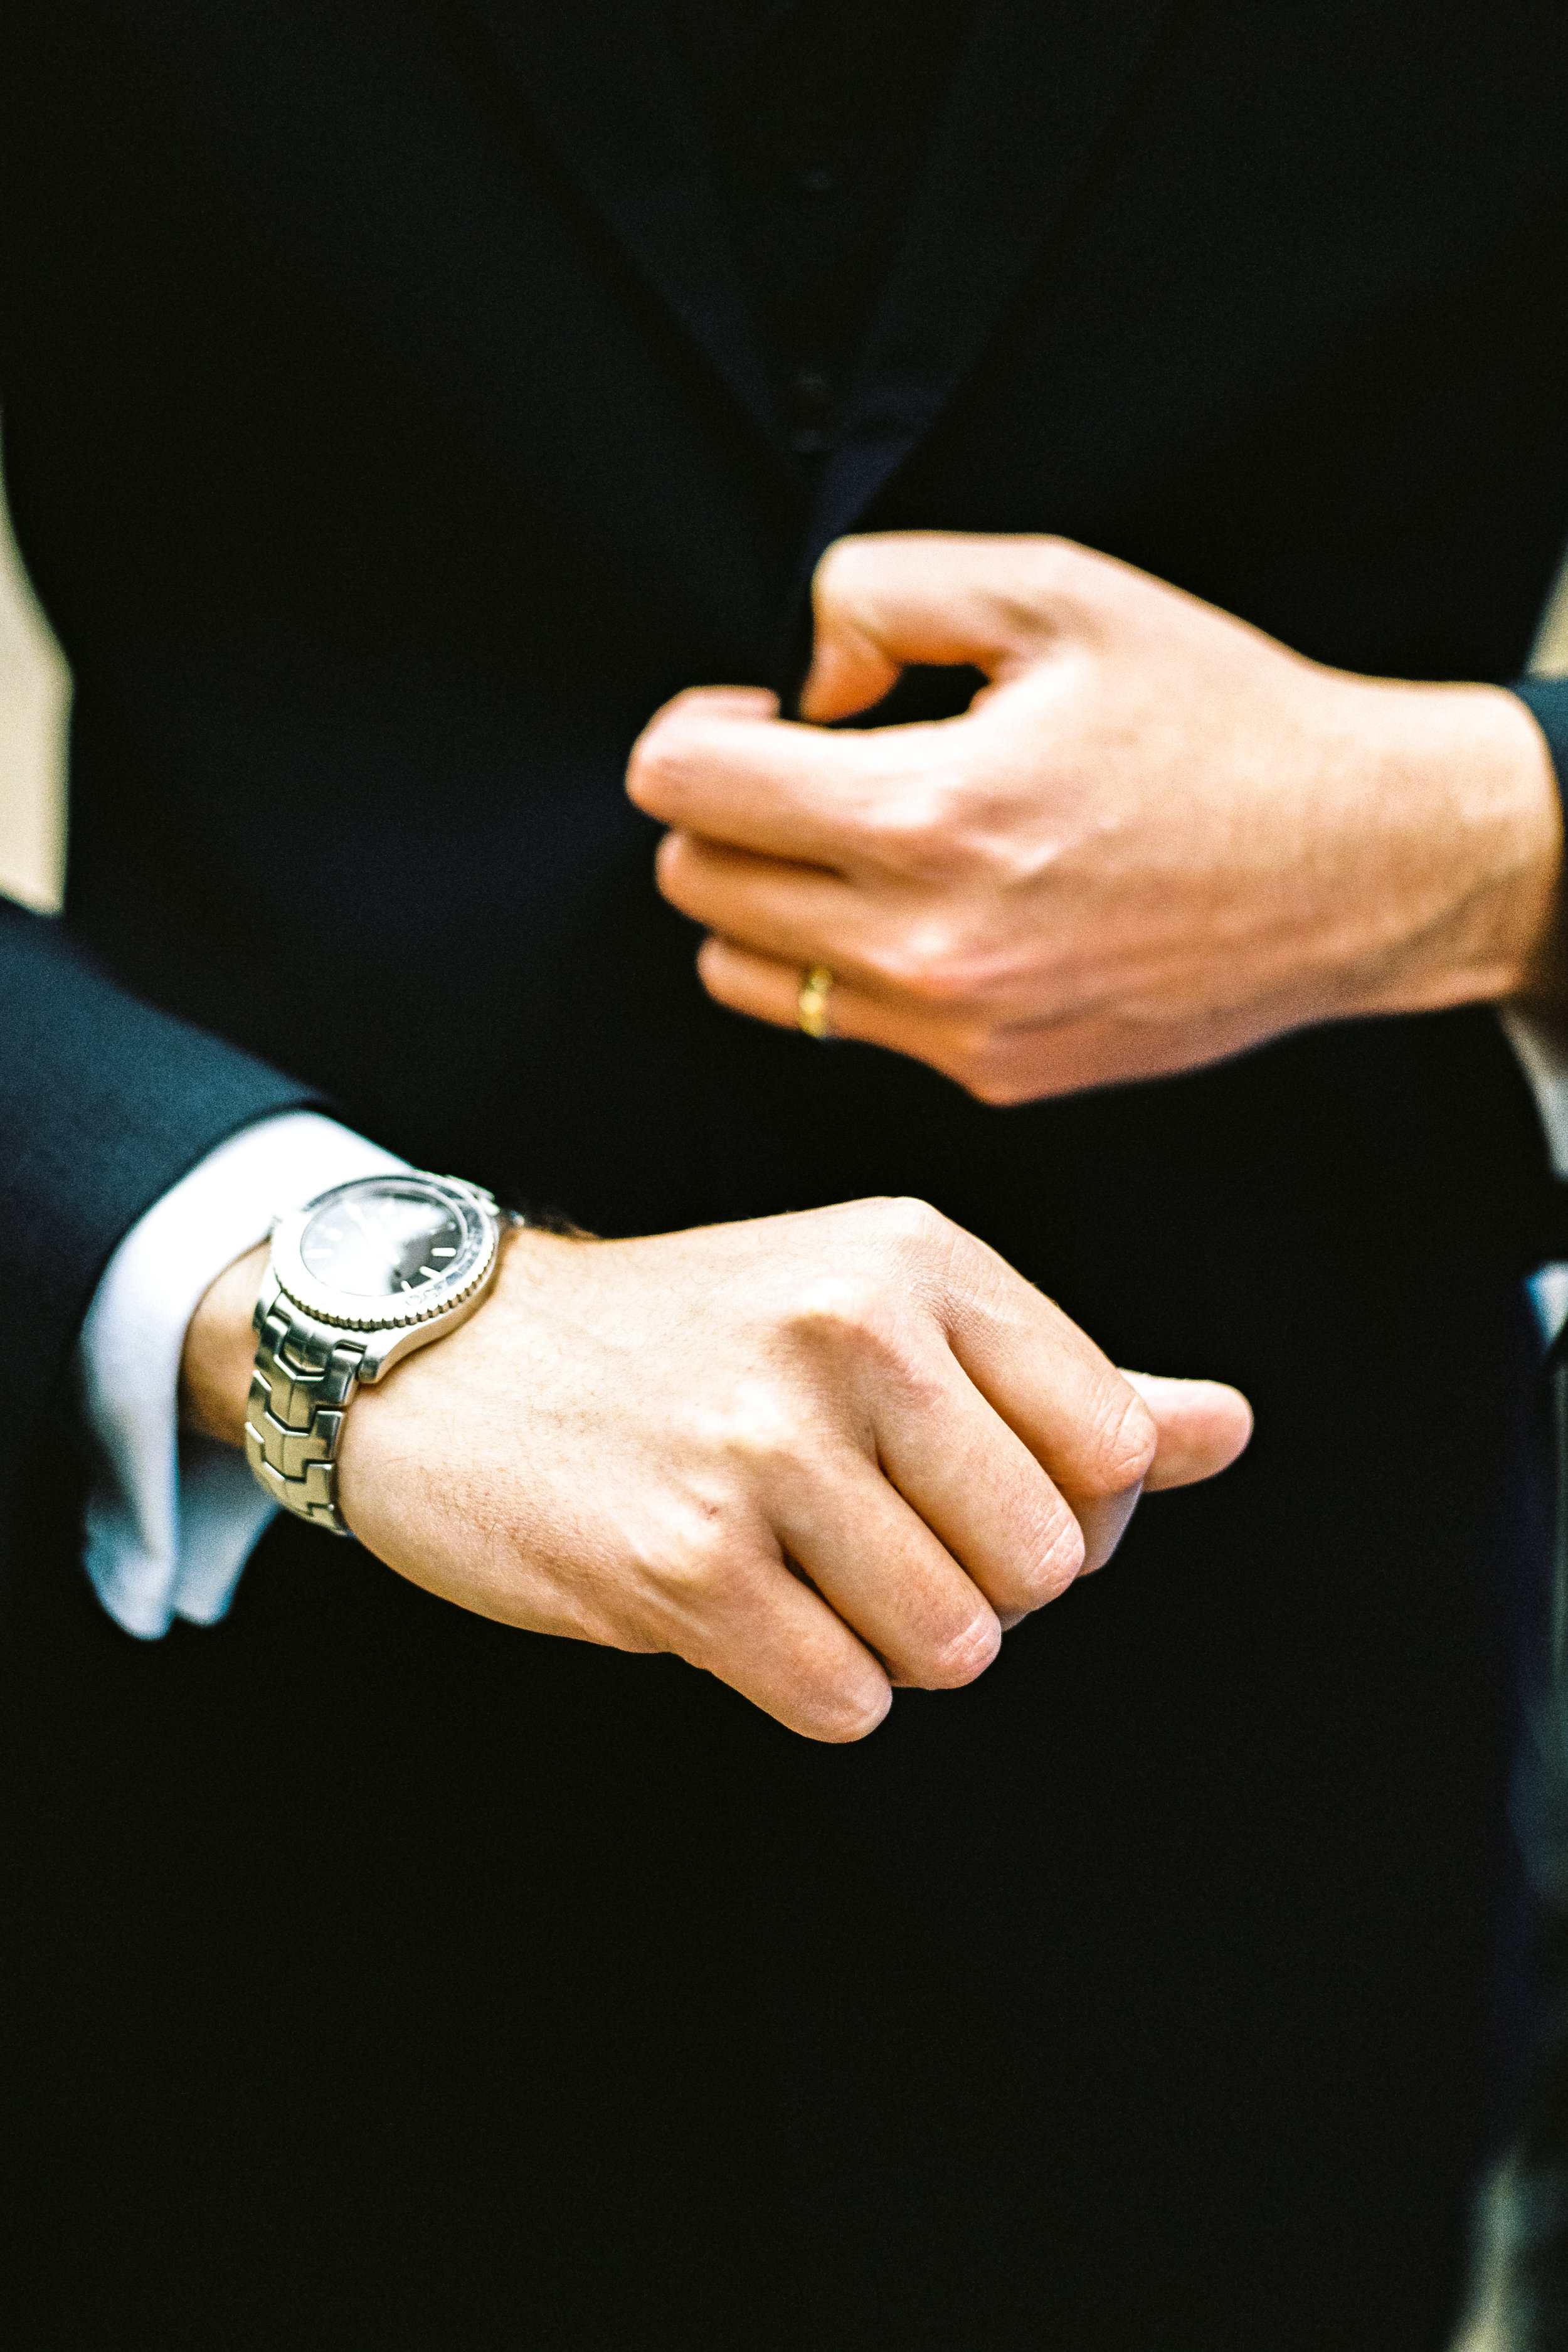 Checking the time - Modern Male Fashion Watch